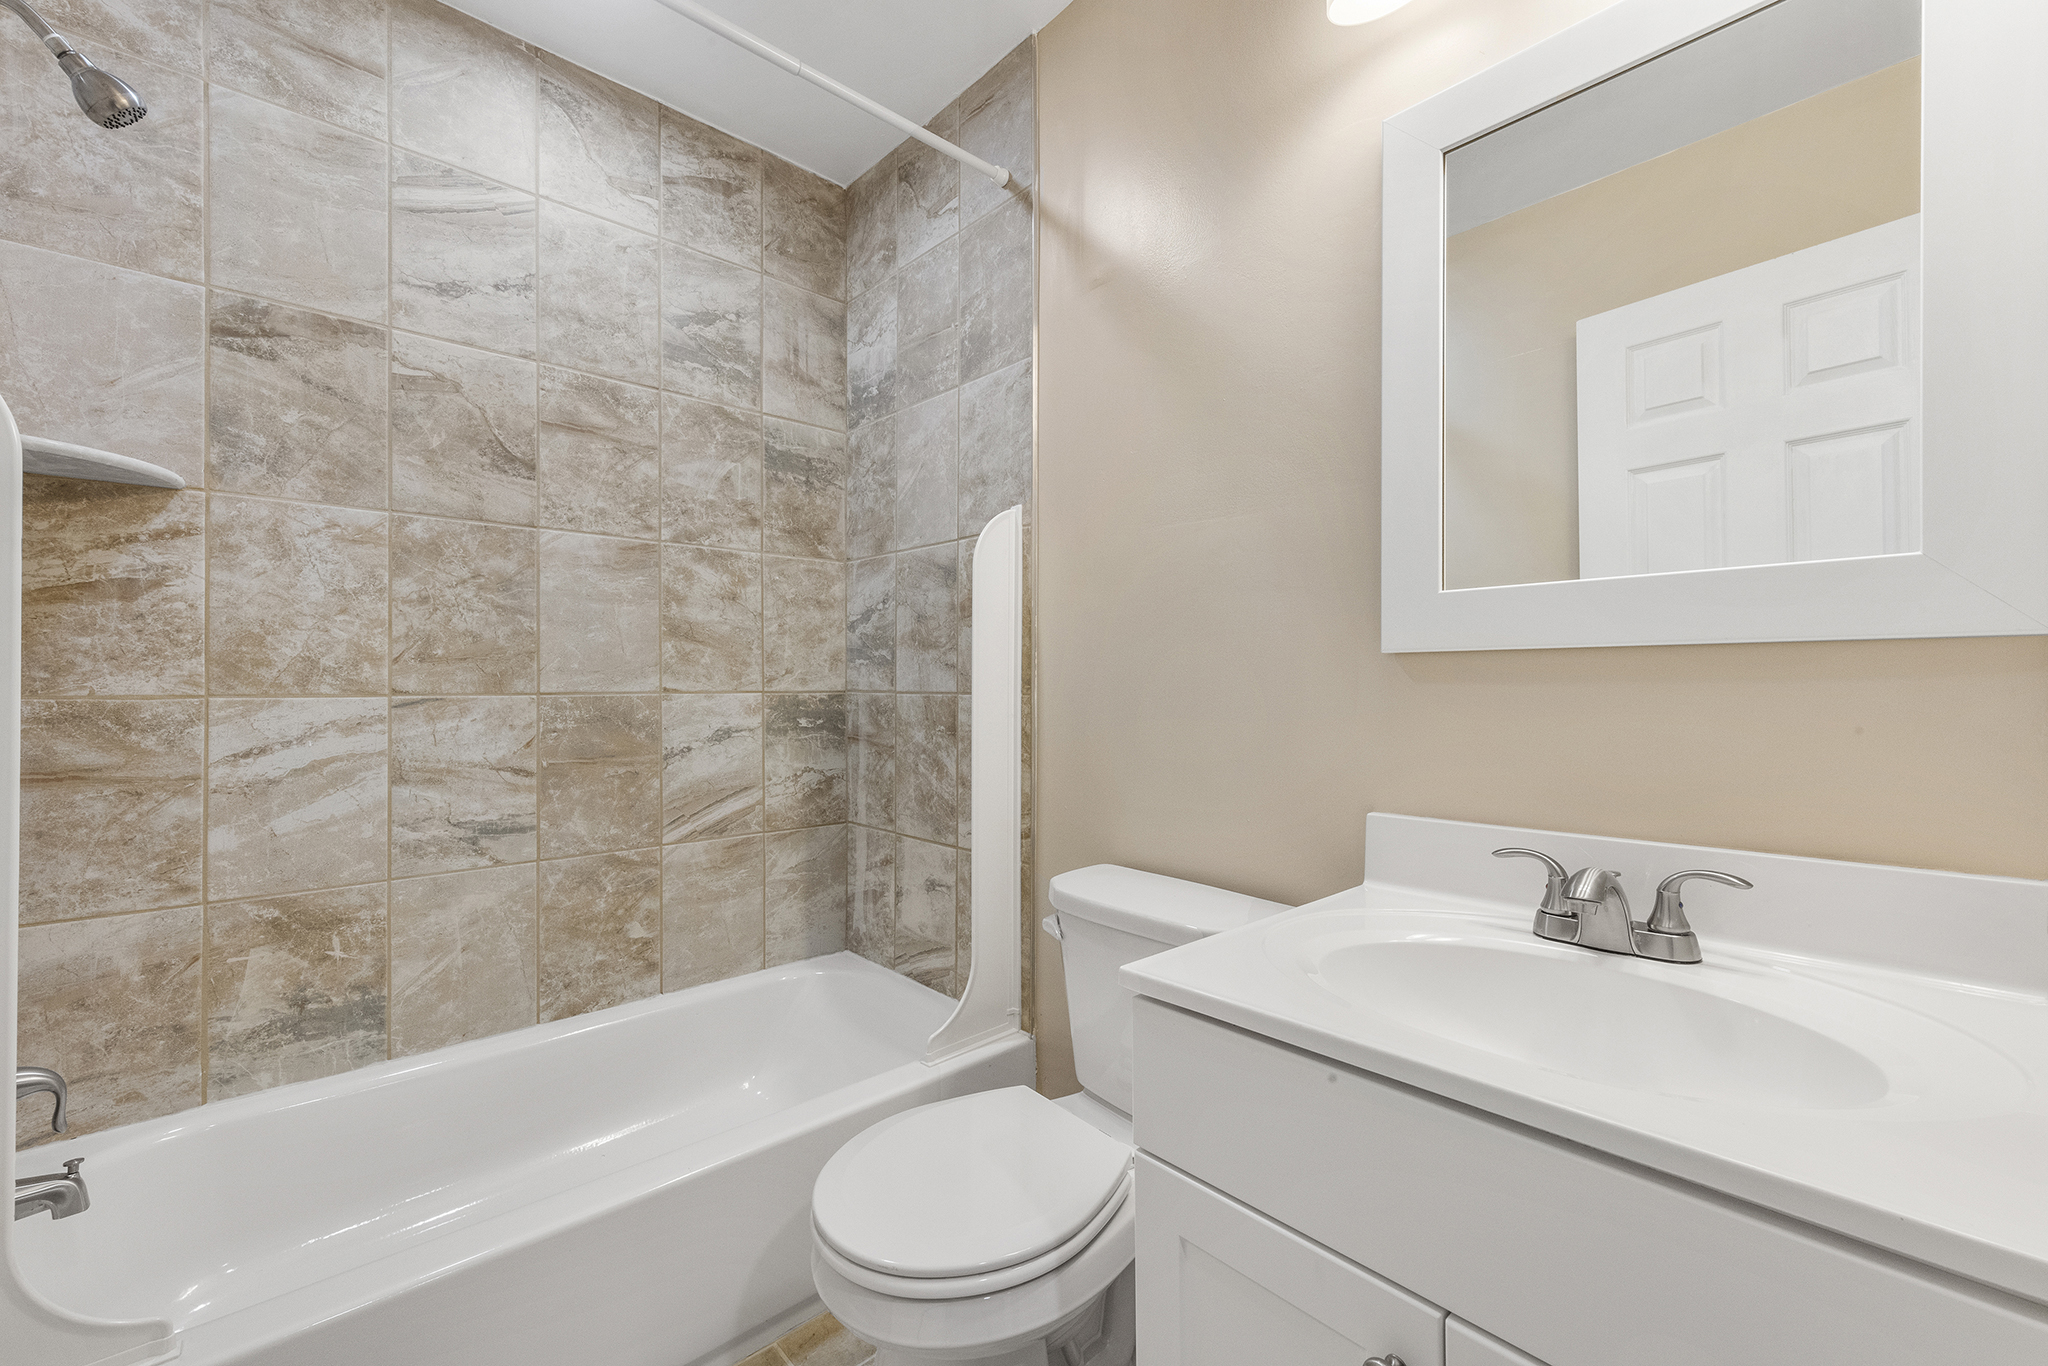 Gorgeous modern bathroom with a white sink and vanity and stone tiling in the shower